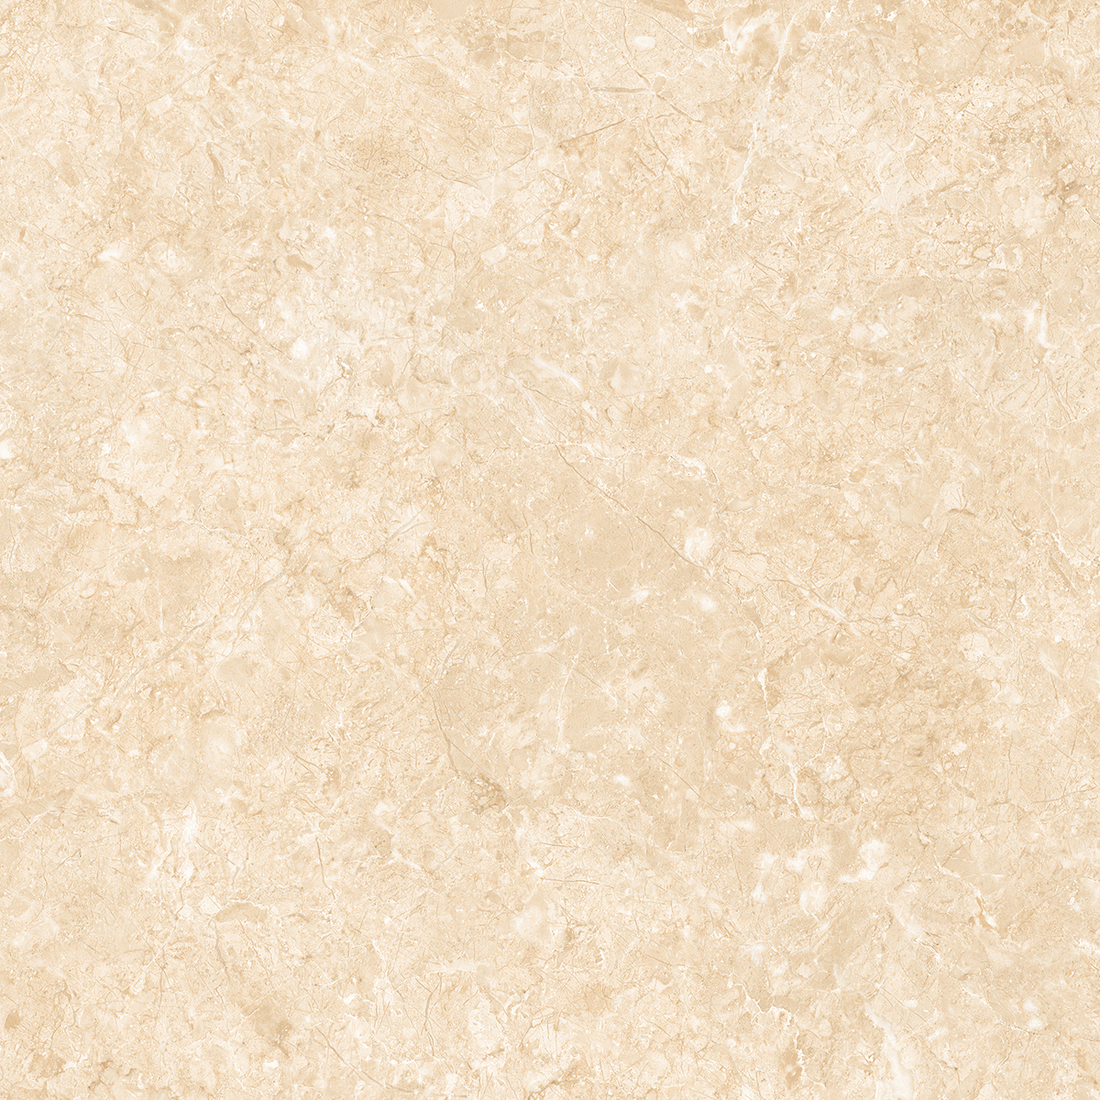 Beige Royal Marble